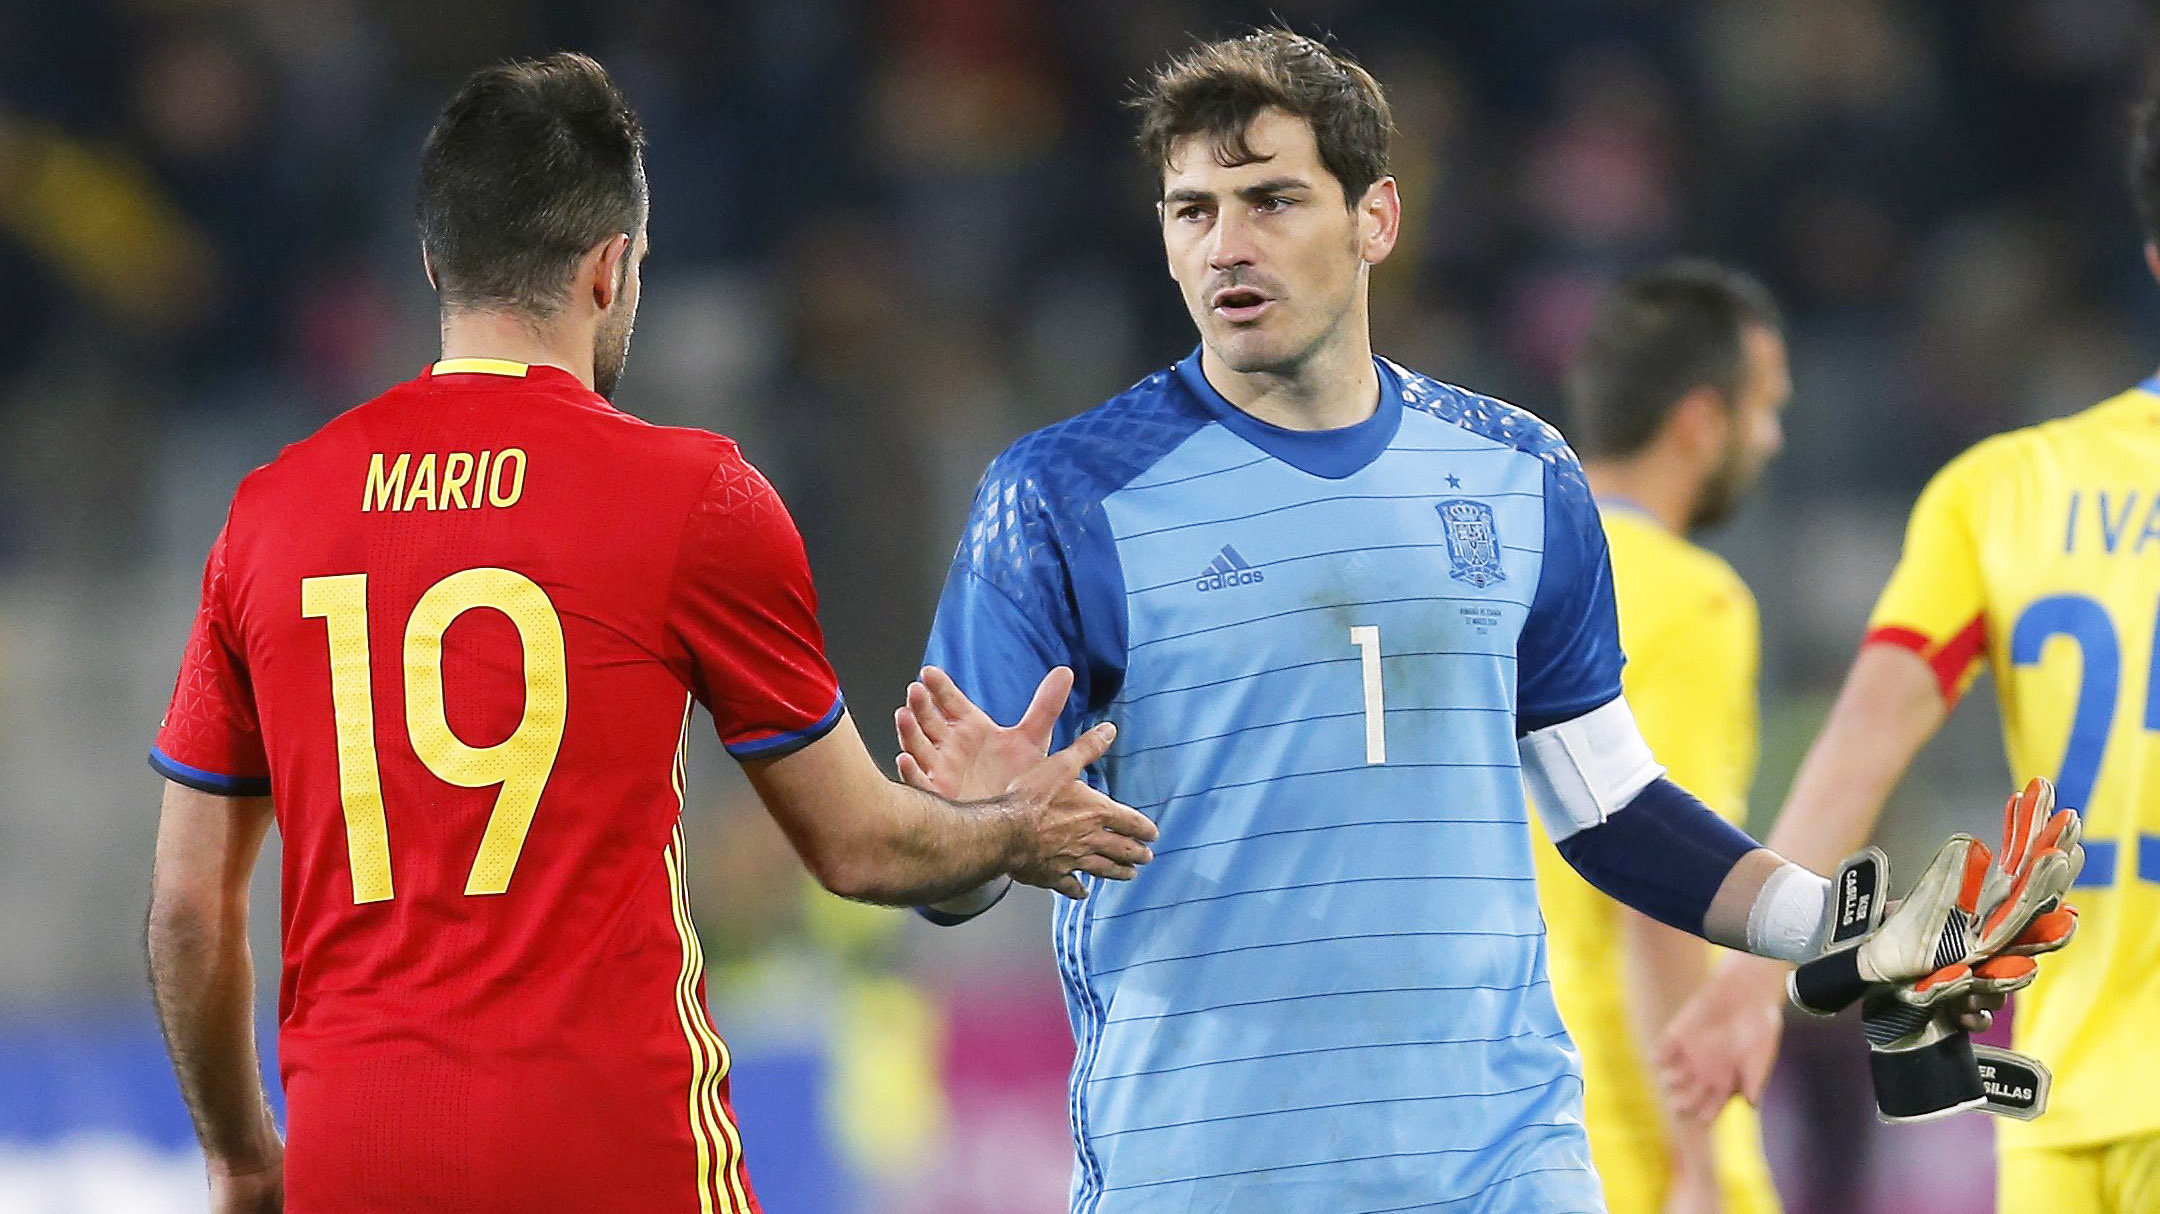 CLU22. Bucharest (Romania), 27/03/2016.- Spain's goalkeeper Iker Casillas (R) cheers up his teammate Mario Perez (L) at the end of the friendly soccer game between Romania and Spain, held at Cluj Arena stadium in Cluj city, 450 Km north-west from Buc